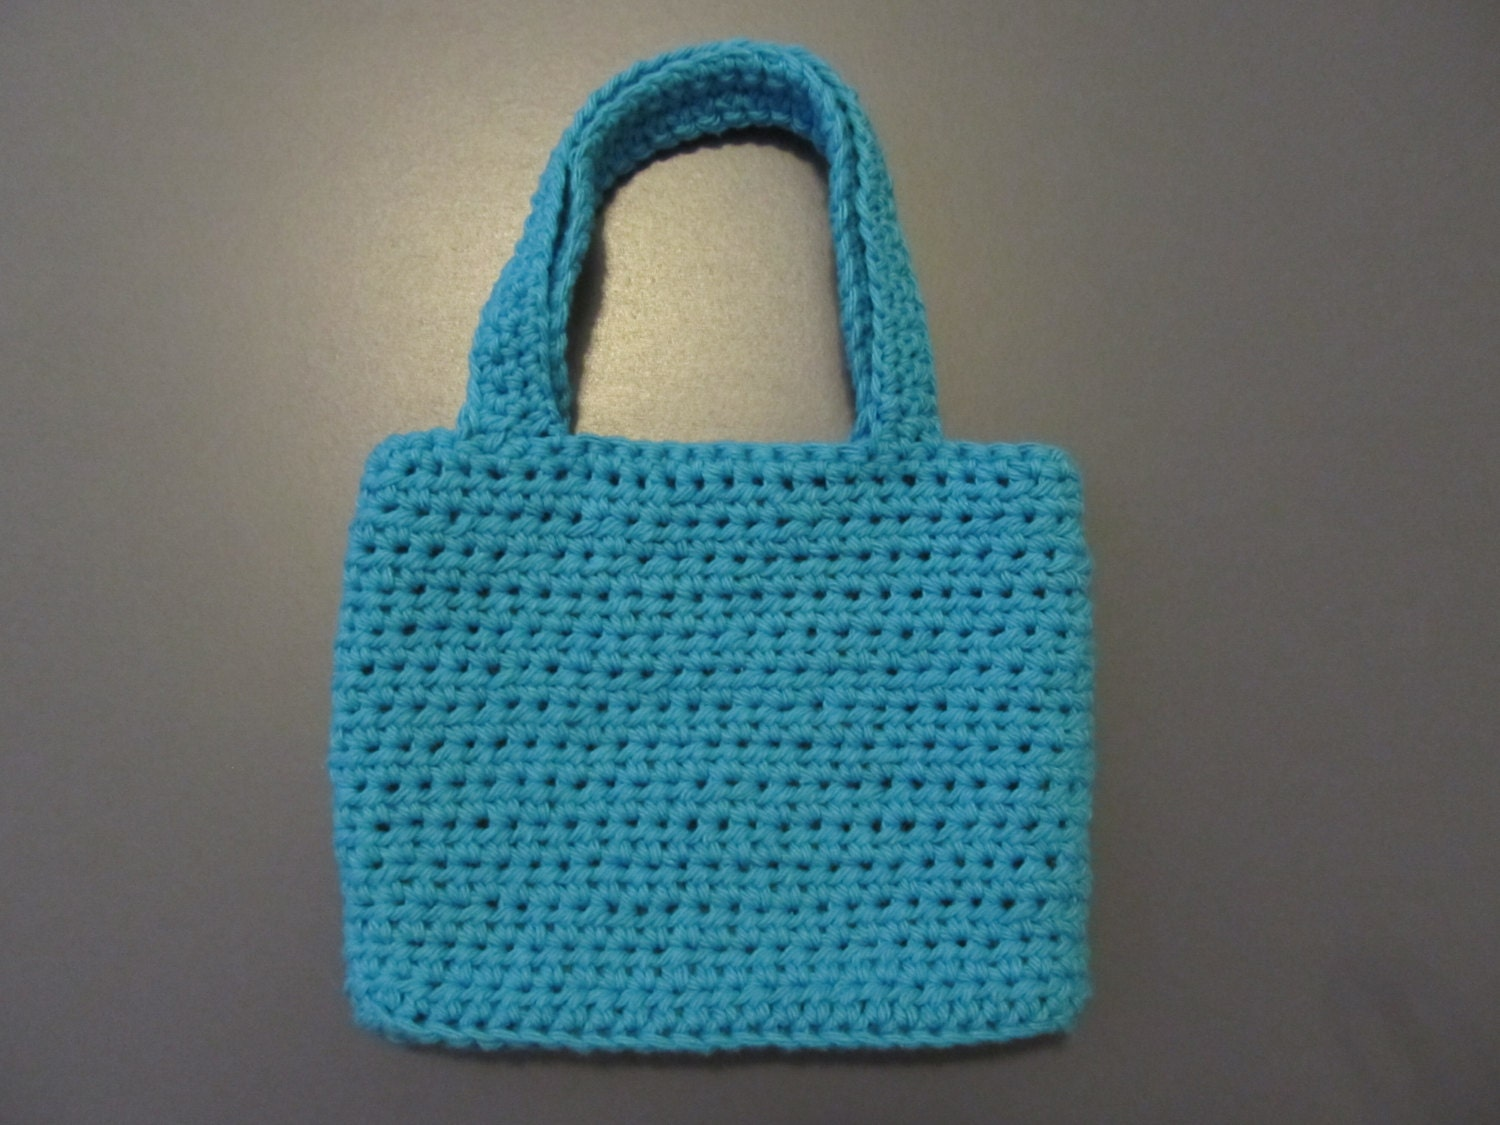 Crochet Purse For Child : Crochet Childs Tote, Bag, Purse PATTERN, Instant Download, Digital ...